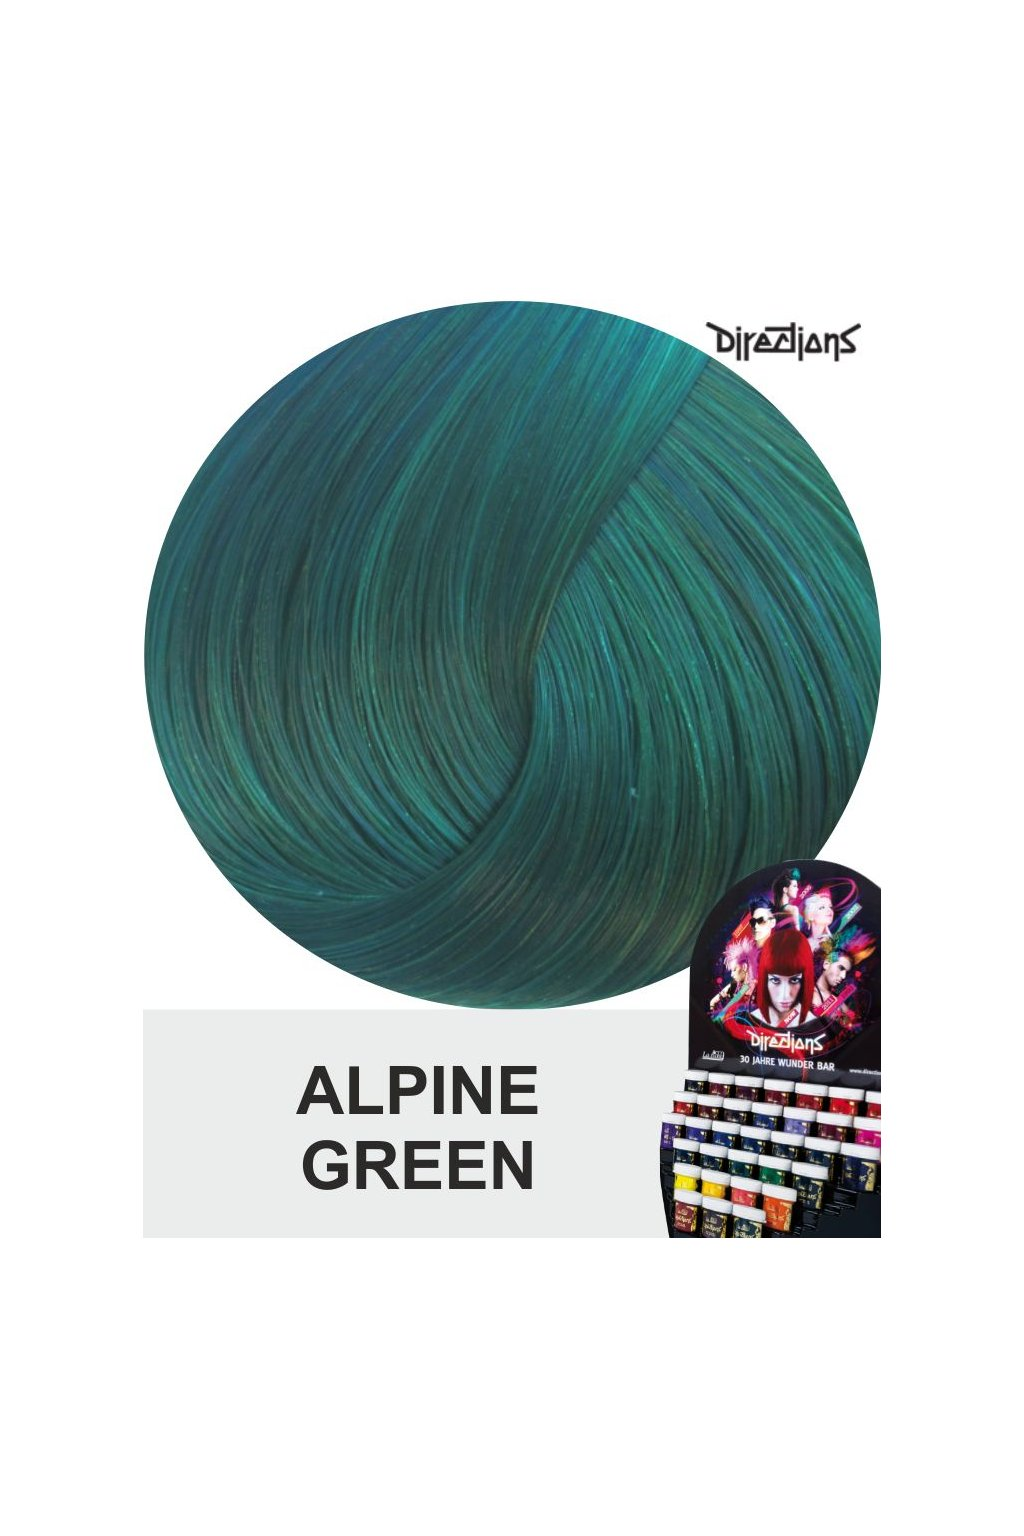 ALPINE GREEN